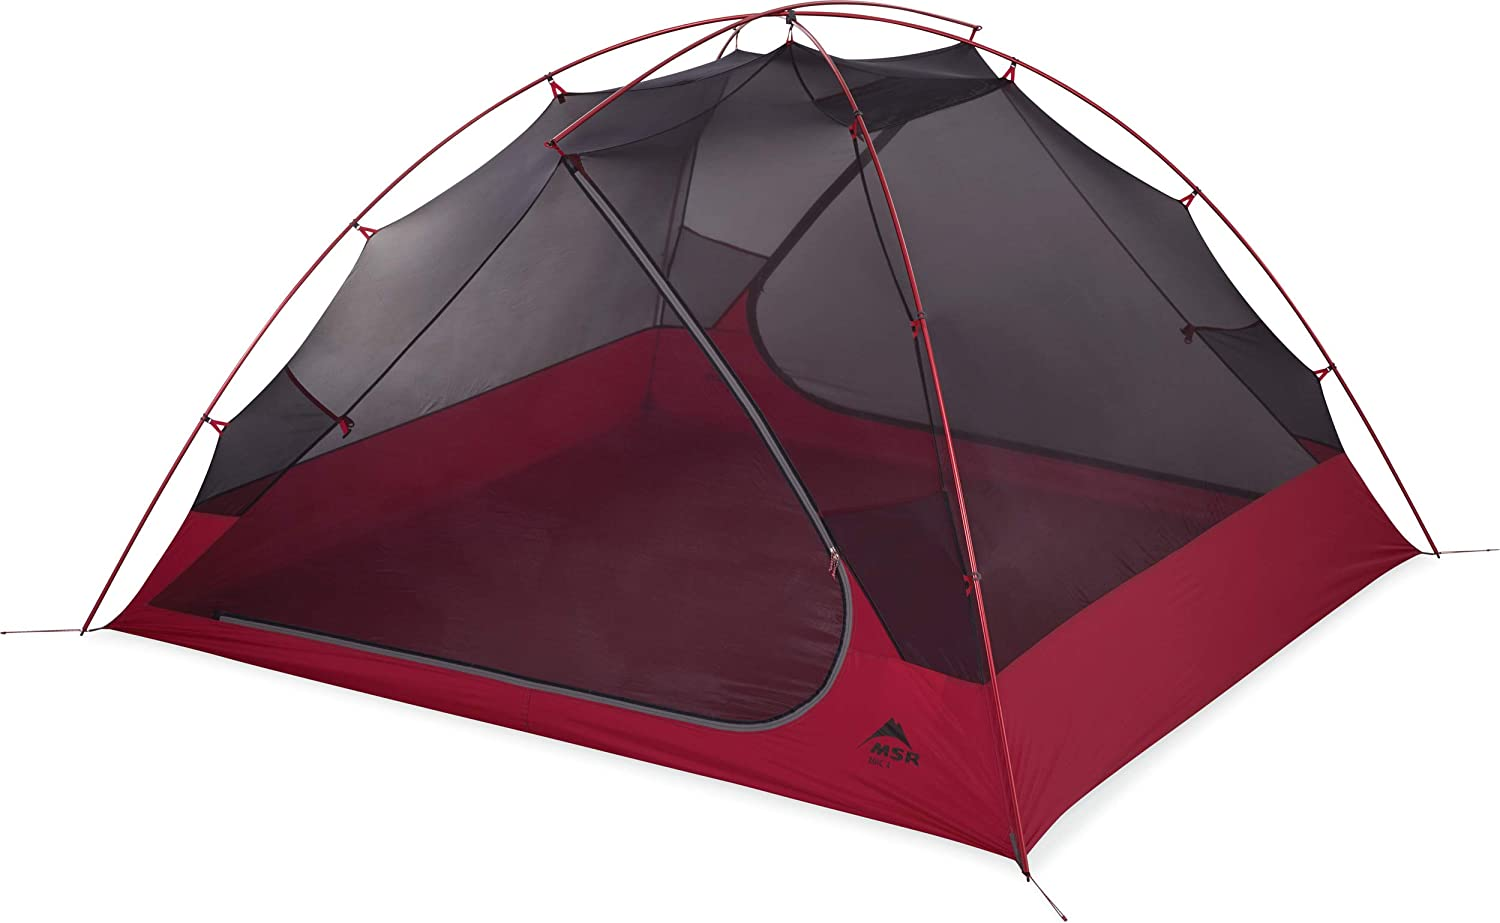 MSR Zoic 4-Person Lightweight Mesh Backpacking Tent with Rainfly